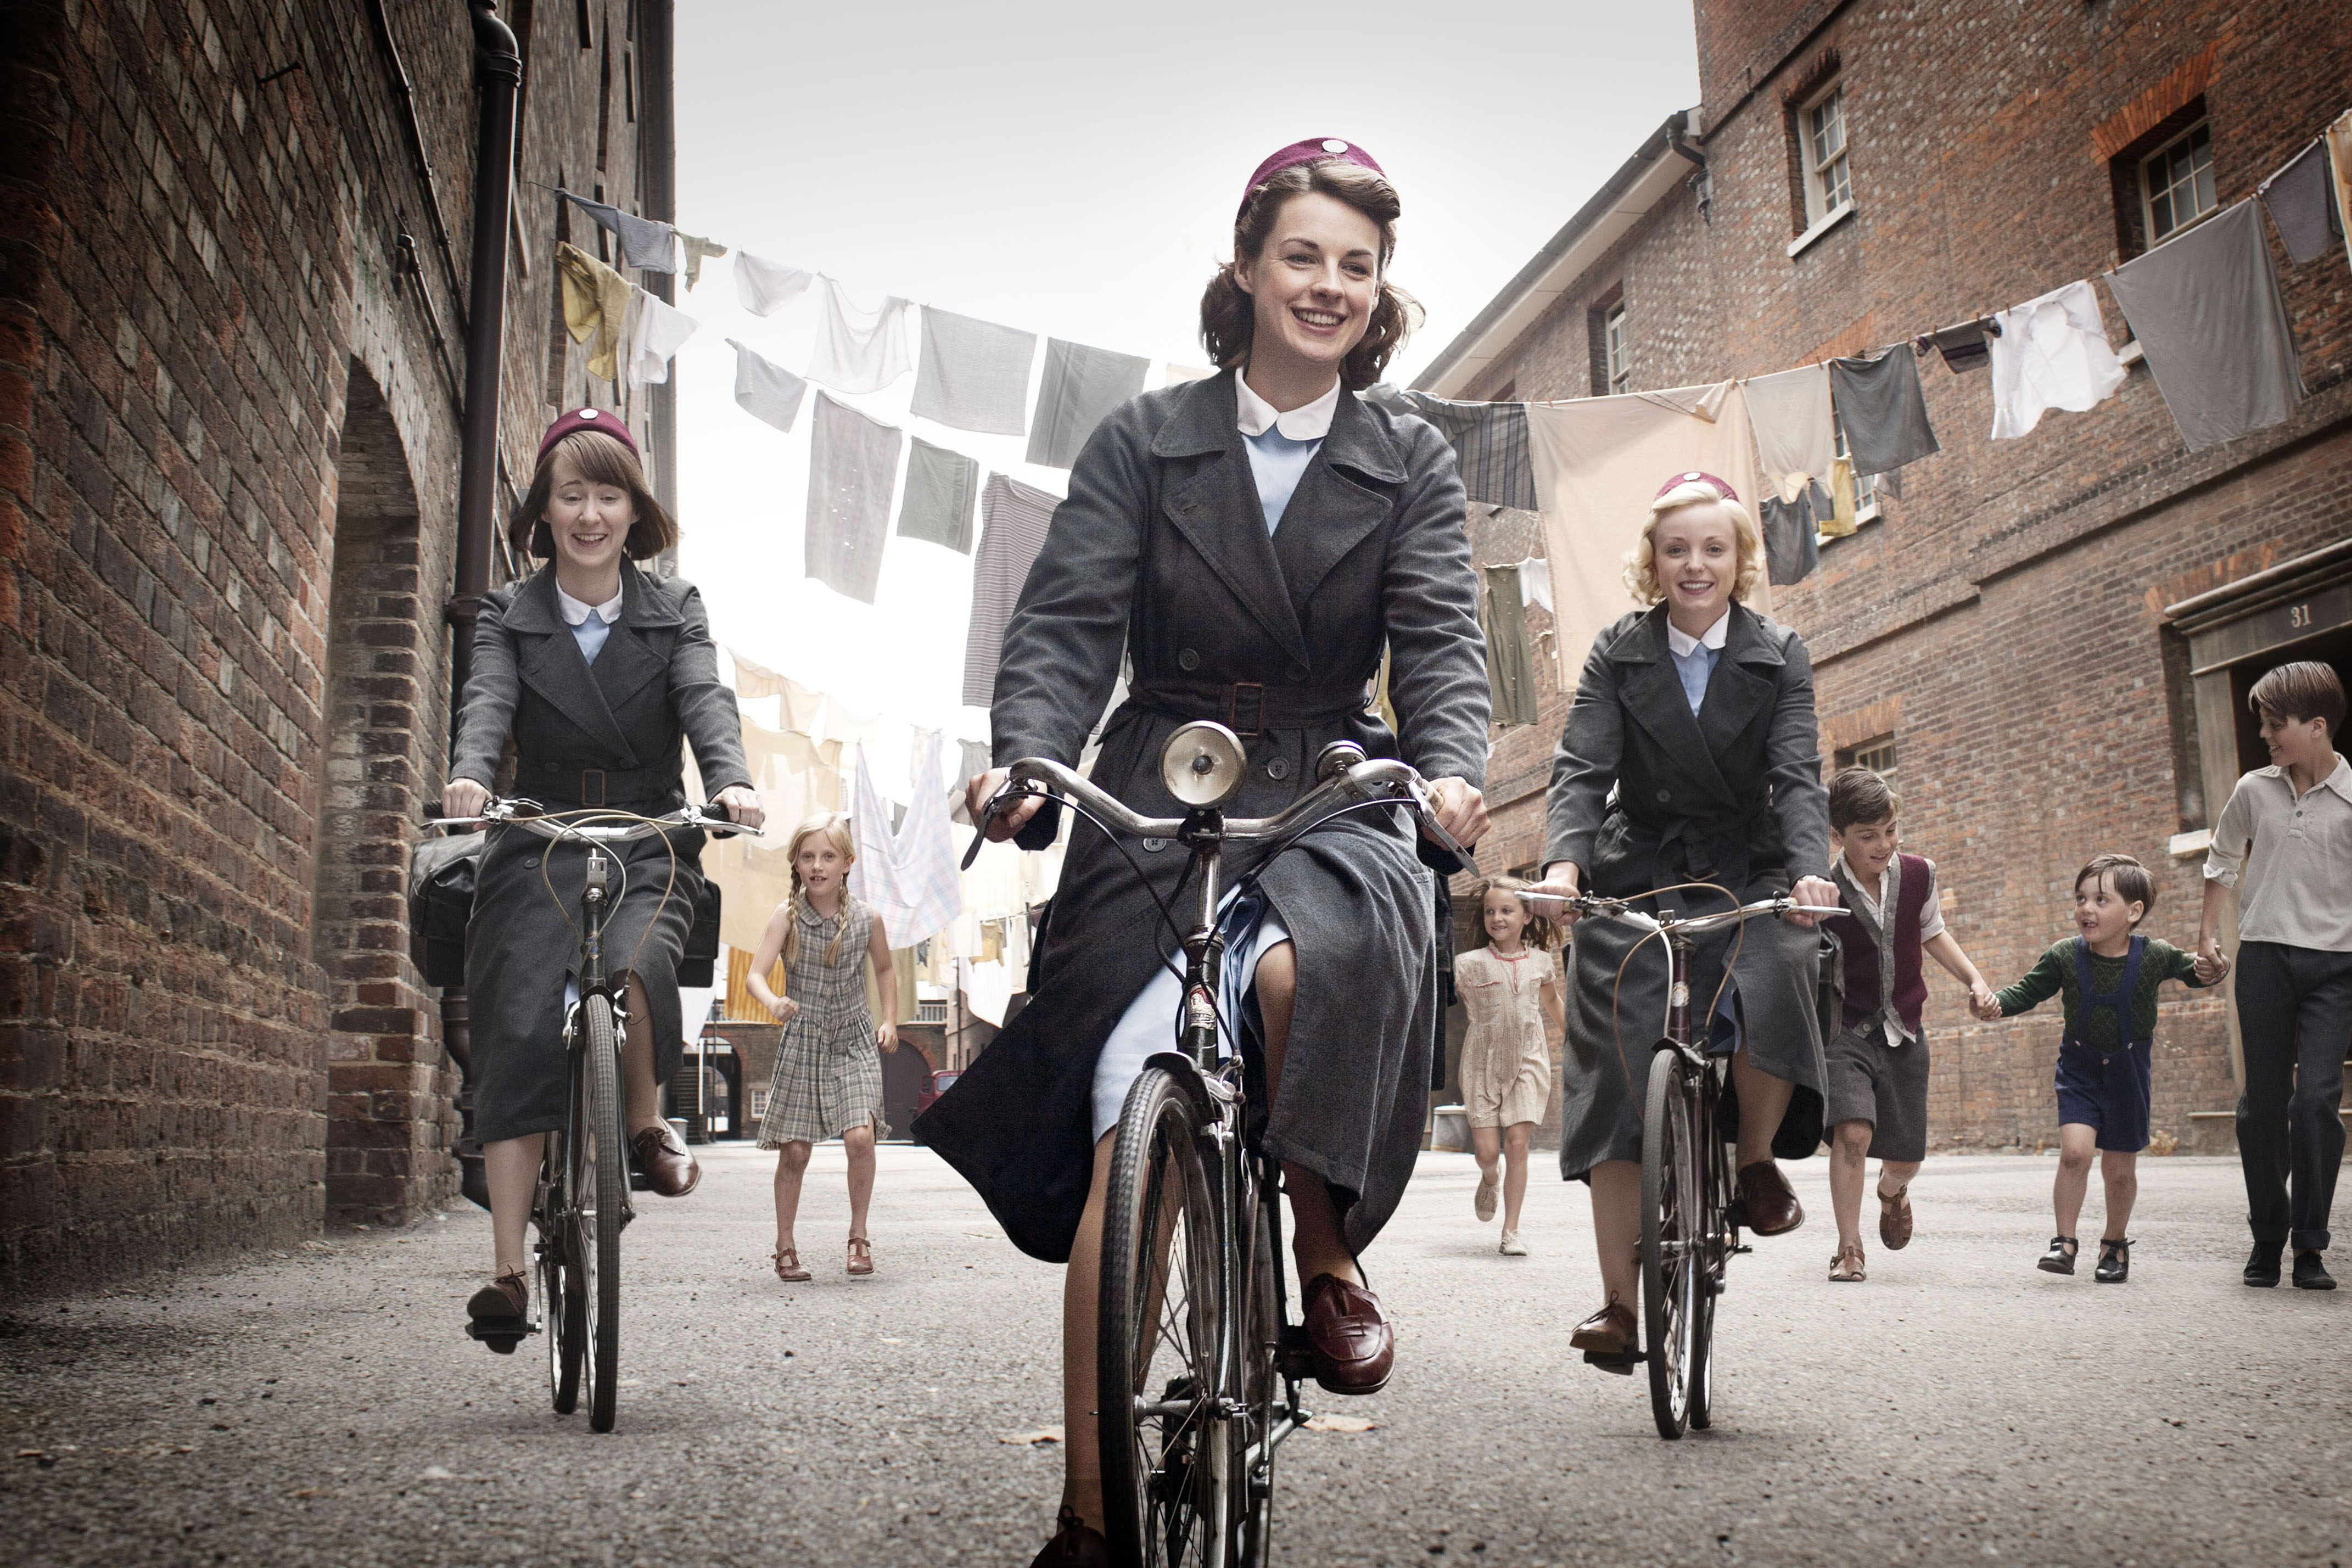 Chatham Historic Dockyard and 'Call the Midwife' Tour